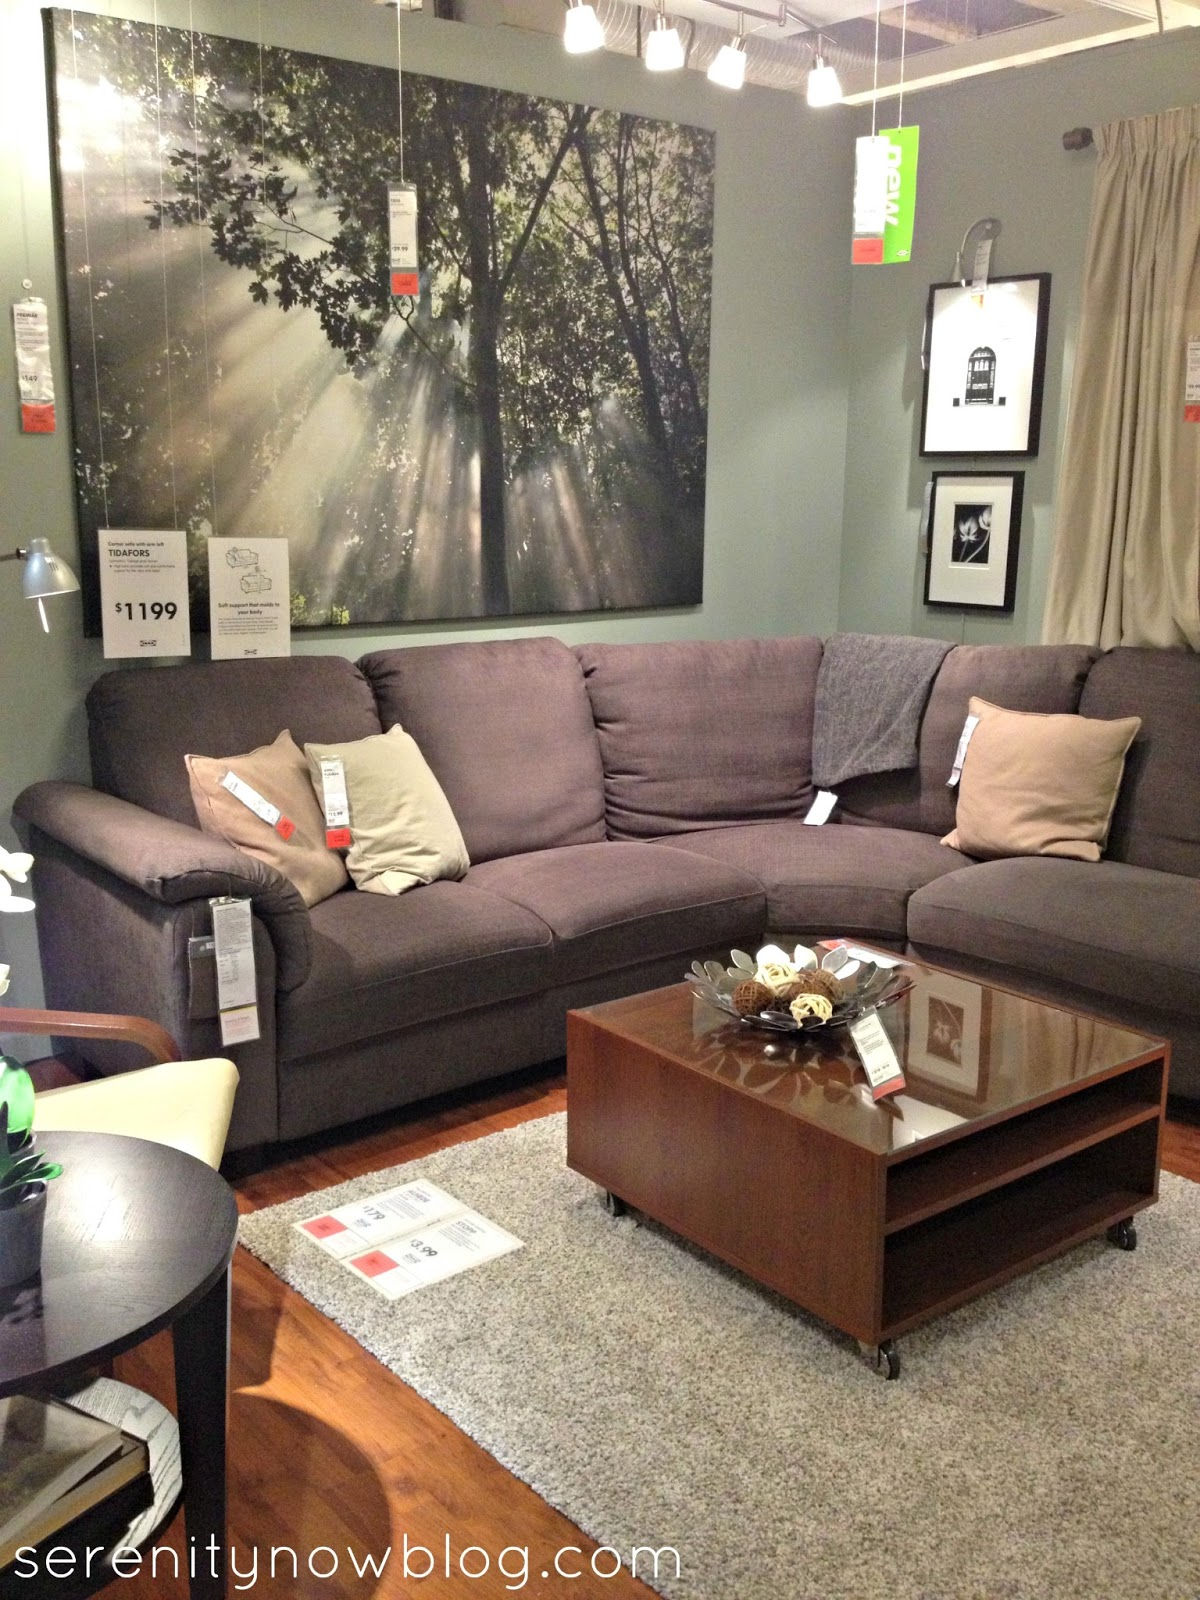 Serenity Now: IKEA Shopping Trip and Home Decor Inspiration (Jan. 2013)